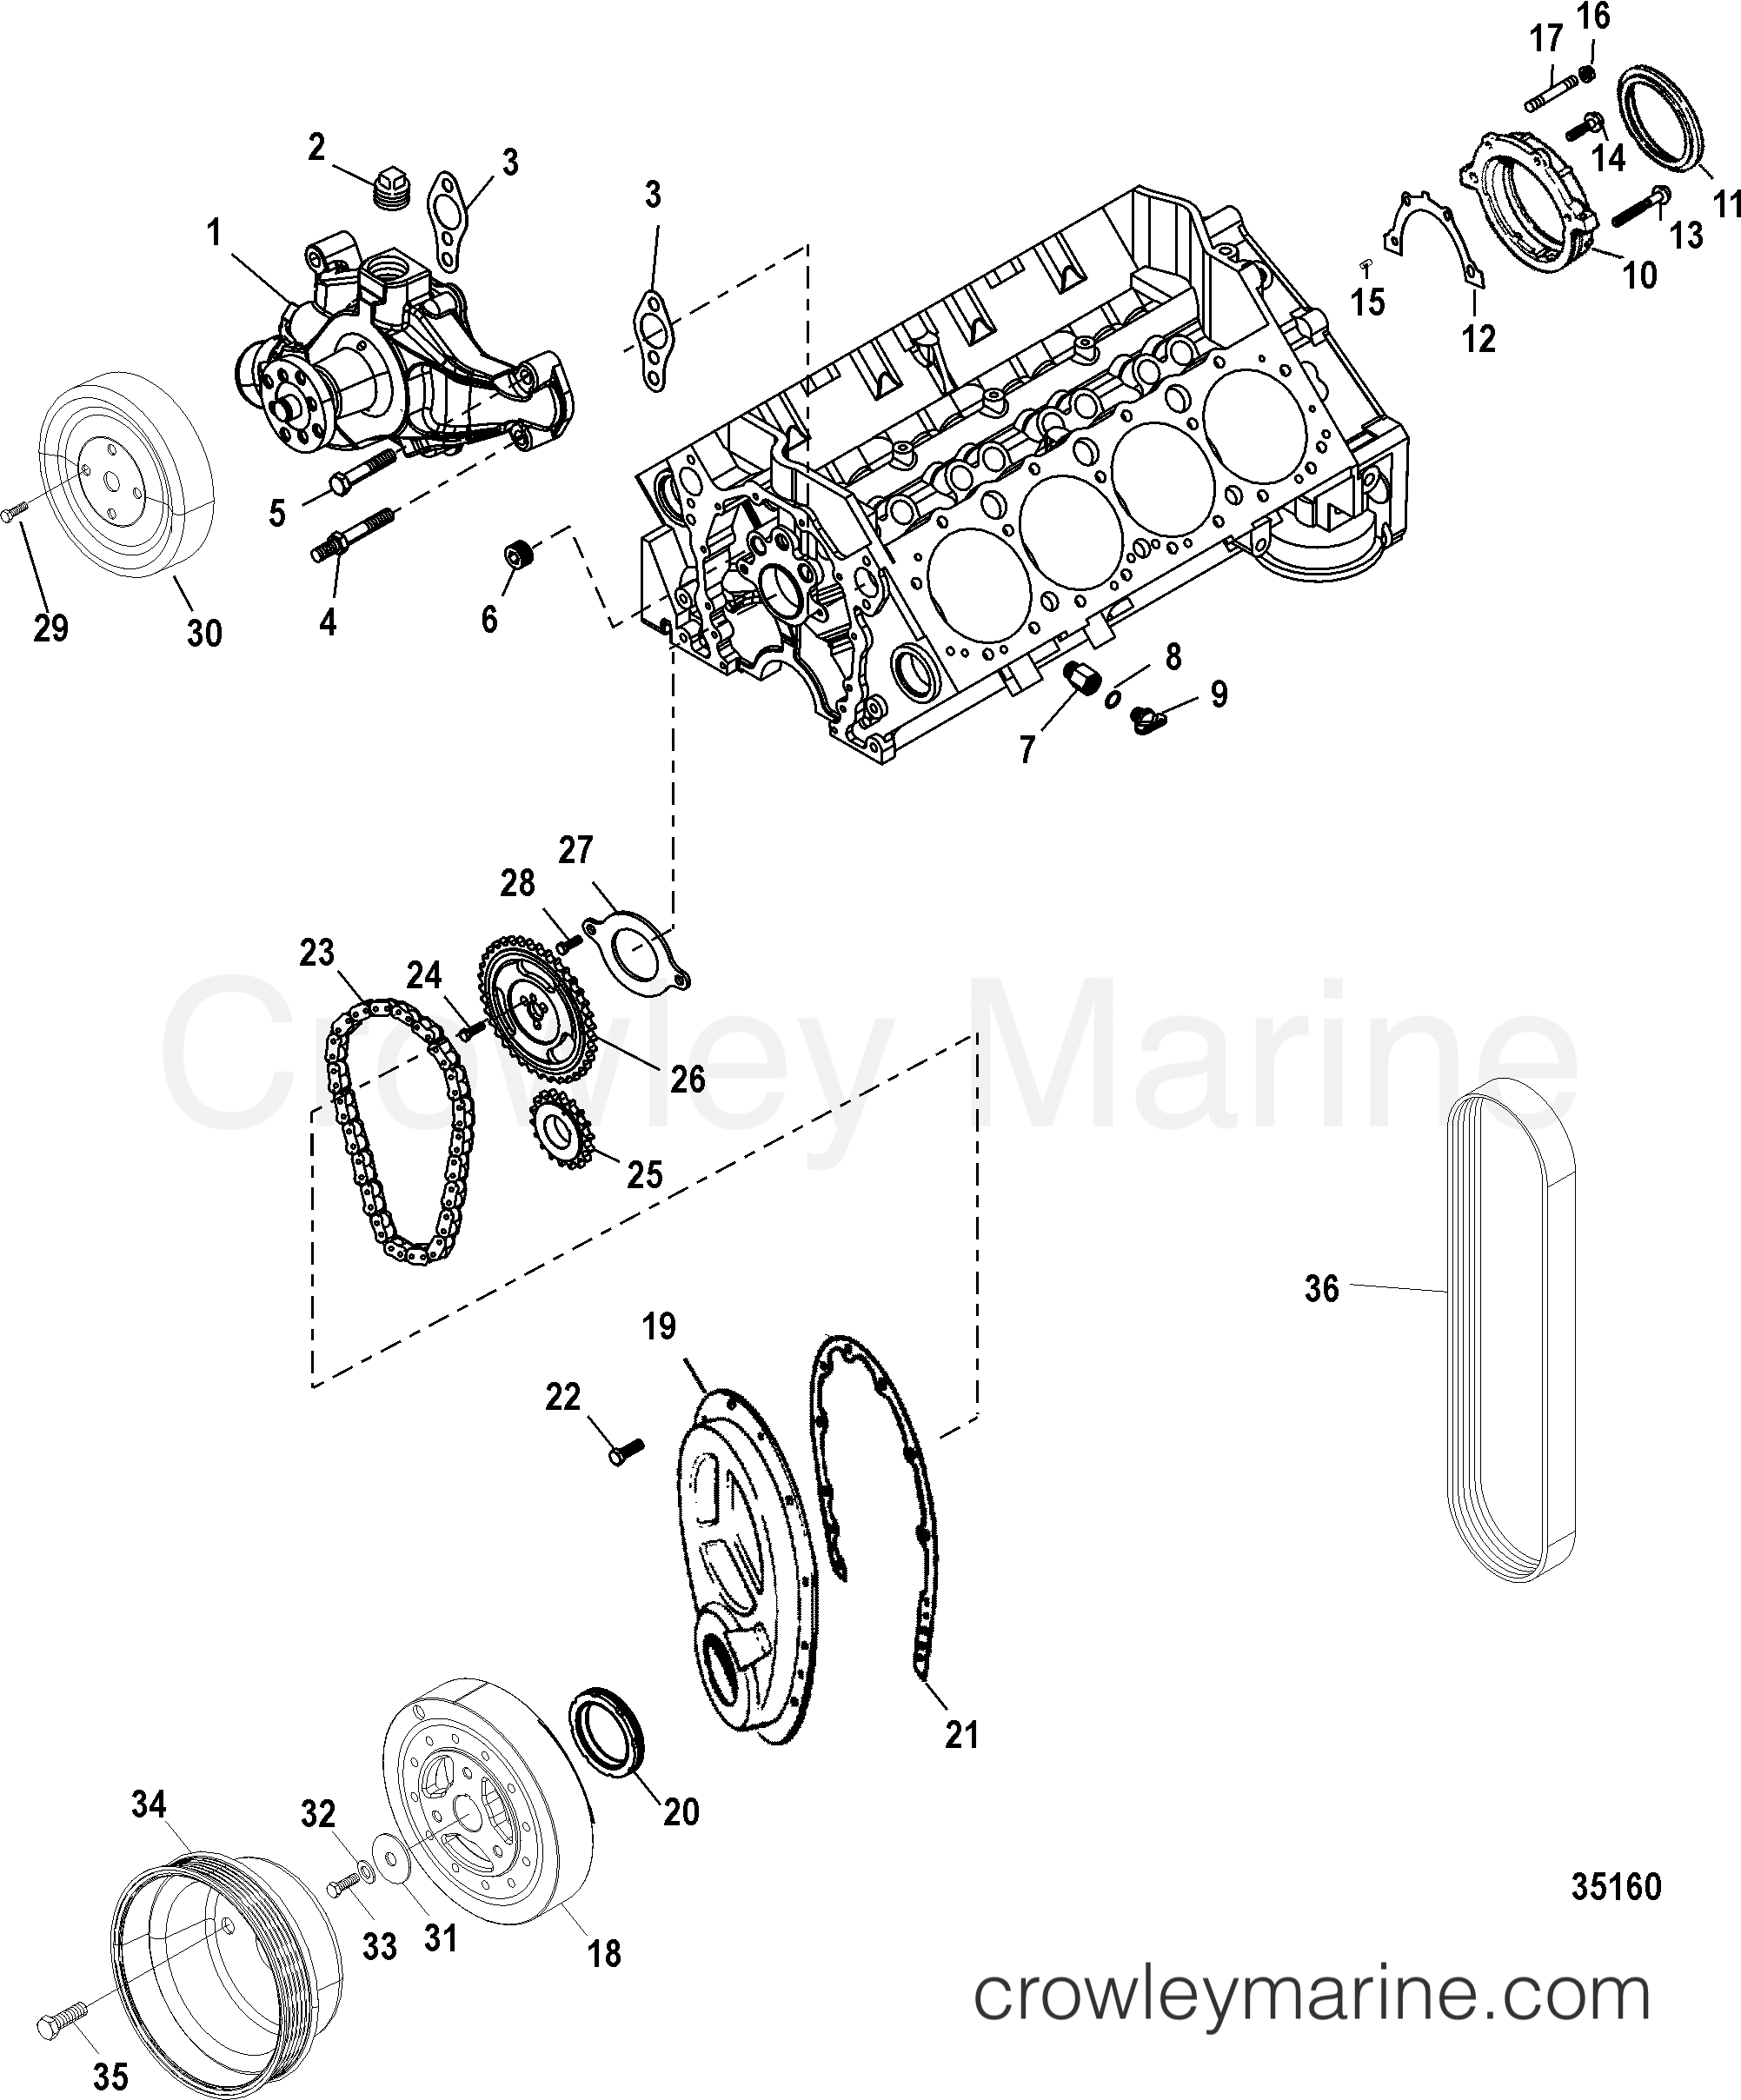 350 crate engine diagram front cover and circulating pump serial range mercruiser 350  4  front cover and circulating pump